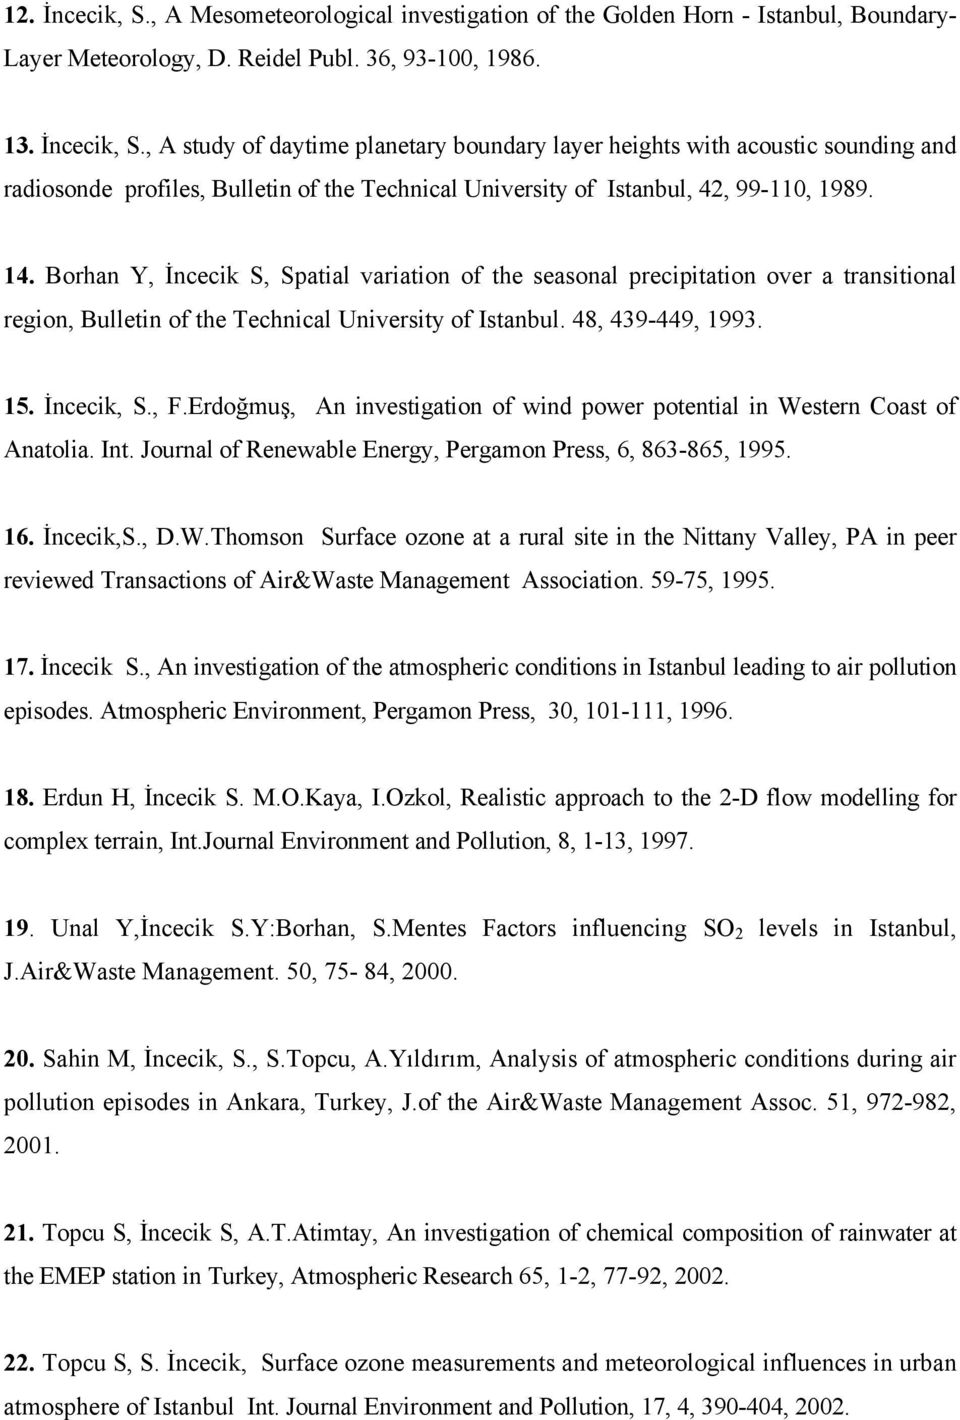 Erdoğmuş, An investigation of wind power potential in Western Coast of Anatolia. Int. Journal of Renewable Energy, Pergamon Press, 6, 863-865, 1995. 16. İncecik,S., D.W.Thomson Surface ozone at a rural site in the Nittany Valley, PA in peer reviewed Transactions of Air&Waste Management Association.